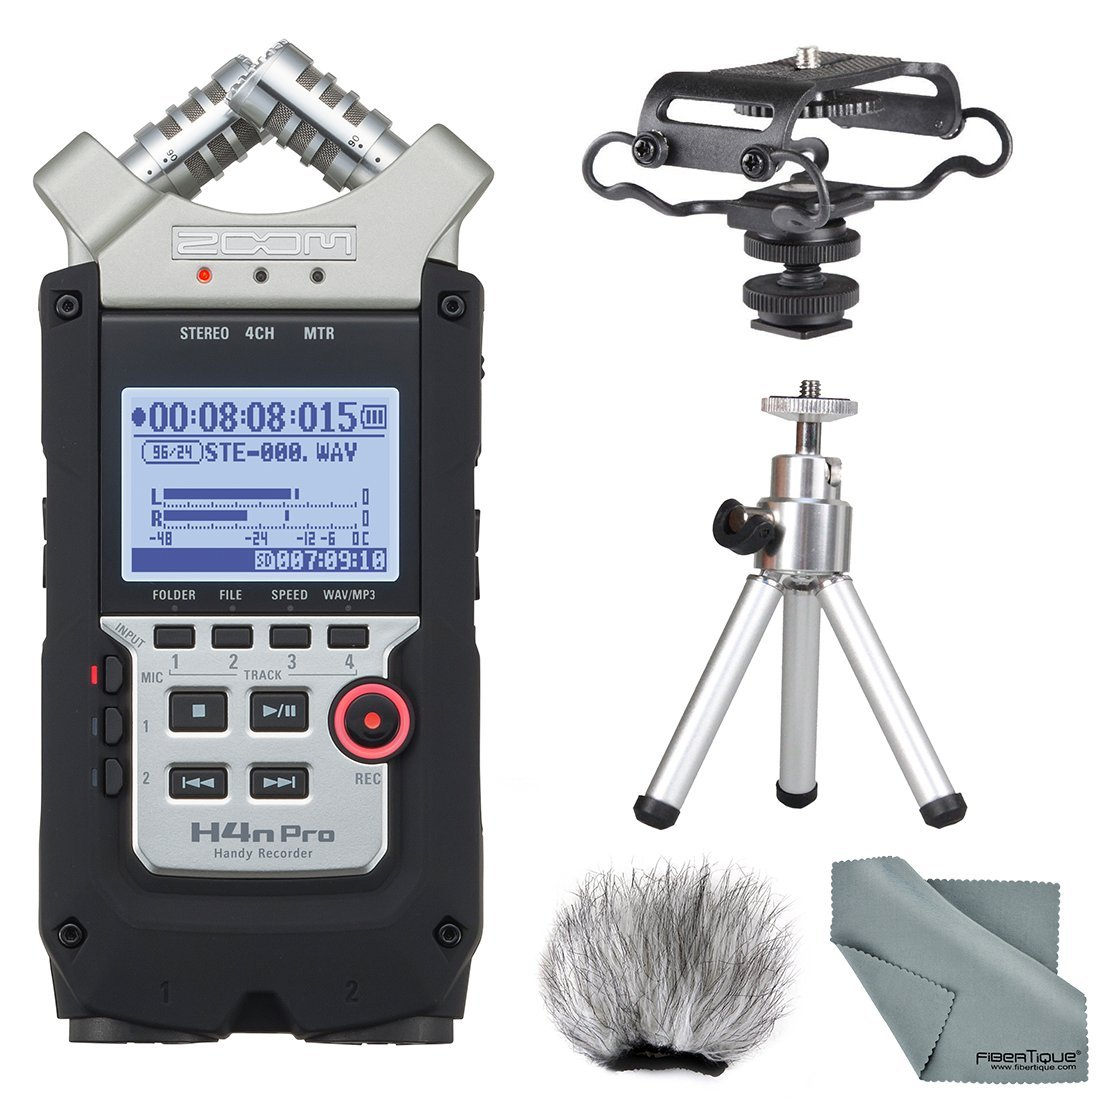 Zoom H4N PRO Four-Track Handy Audio Recorder, Microphone Shockmount, Table tripod, Furry Windscreen, along with Fibertique Cleaning cloth